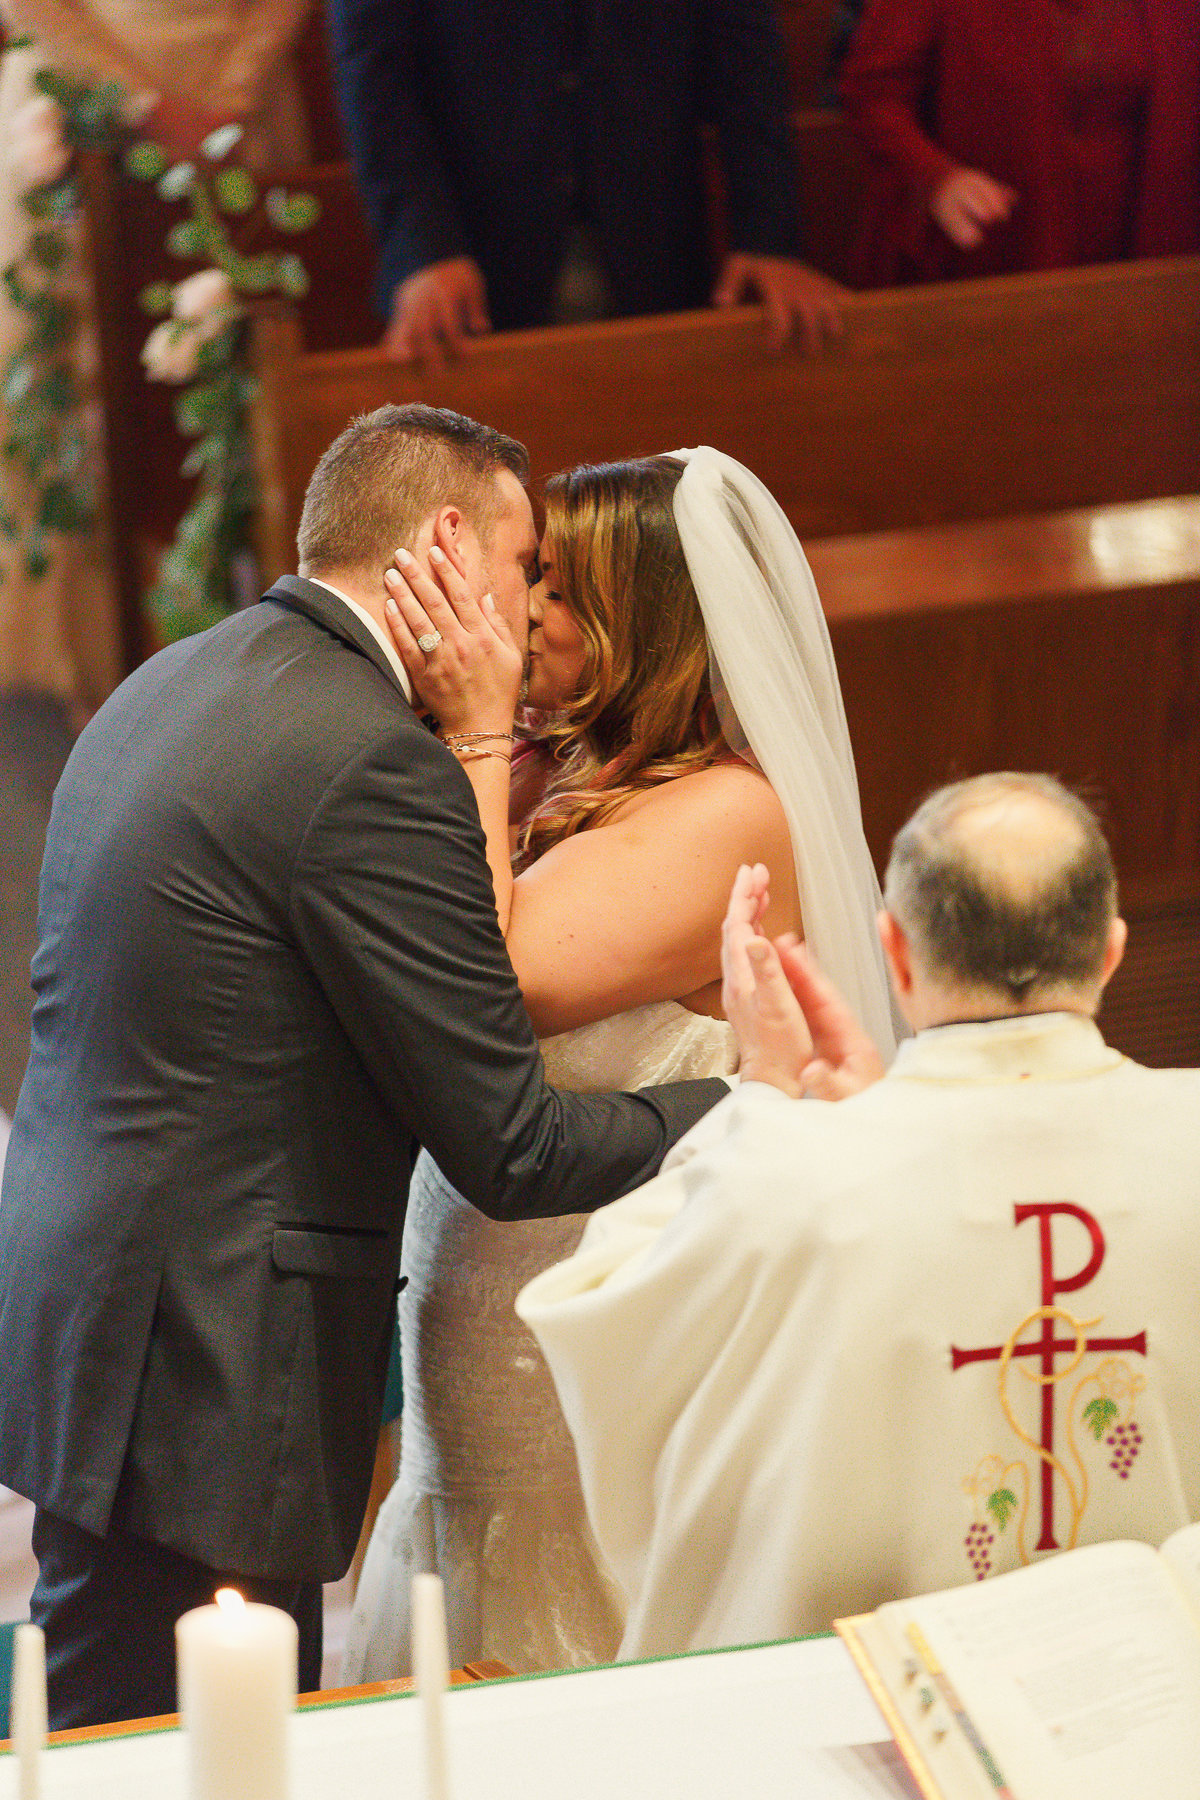 St.-Paul's-Catholic-Church-Wedding-Prospect-Park-New-Jersey-Wedding-Jessica-Lea-IMG-